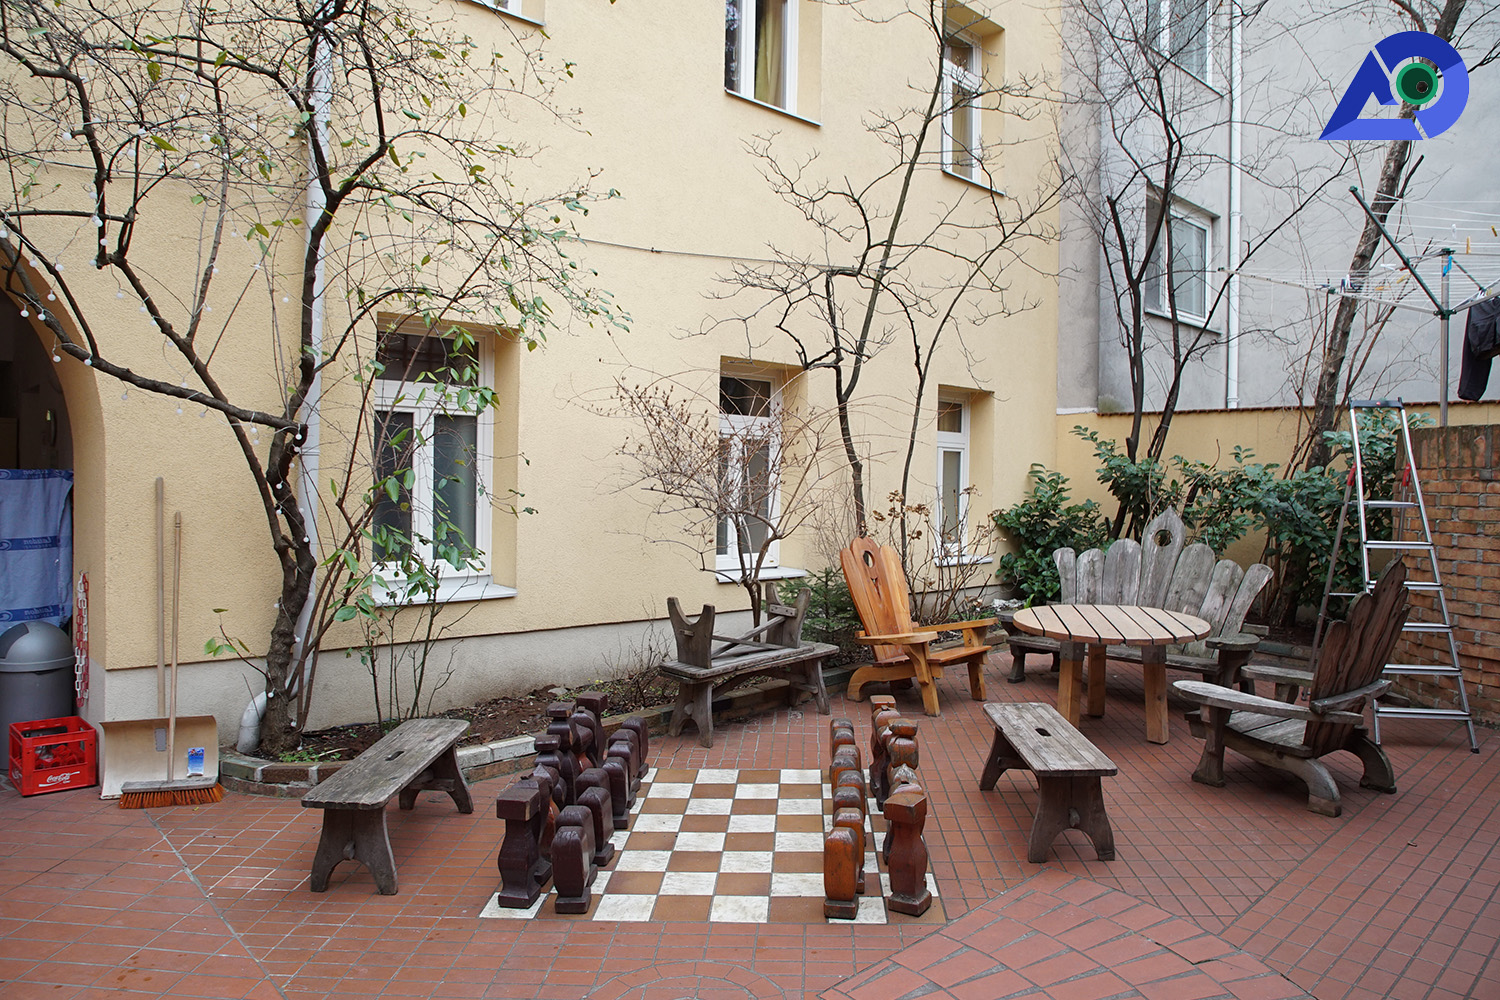 Amenities 4 Hostel Ruthensteiner